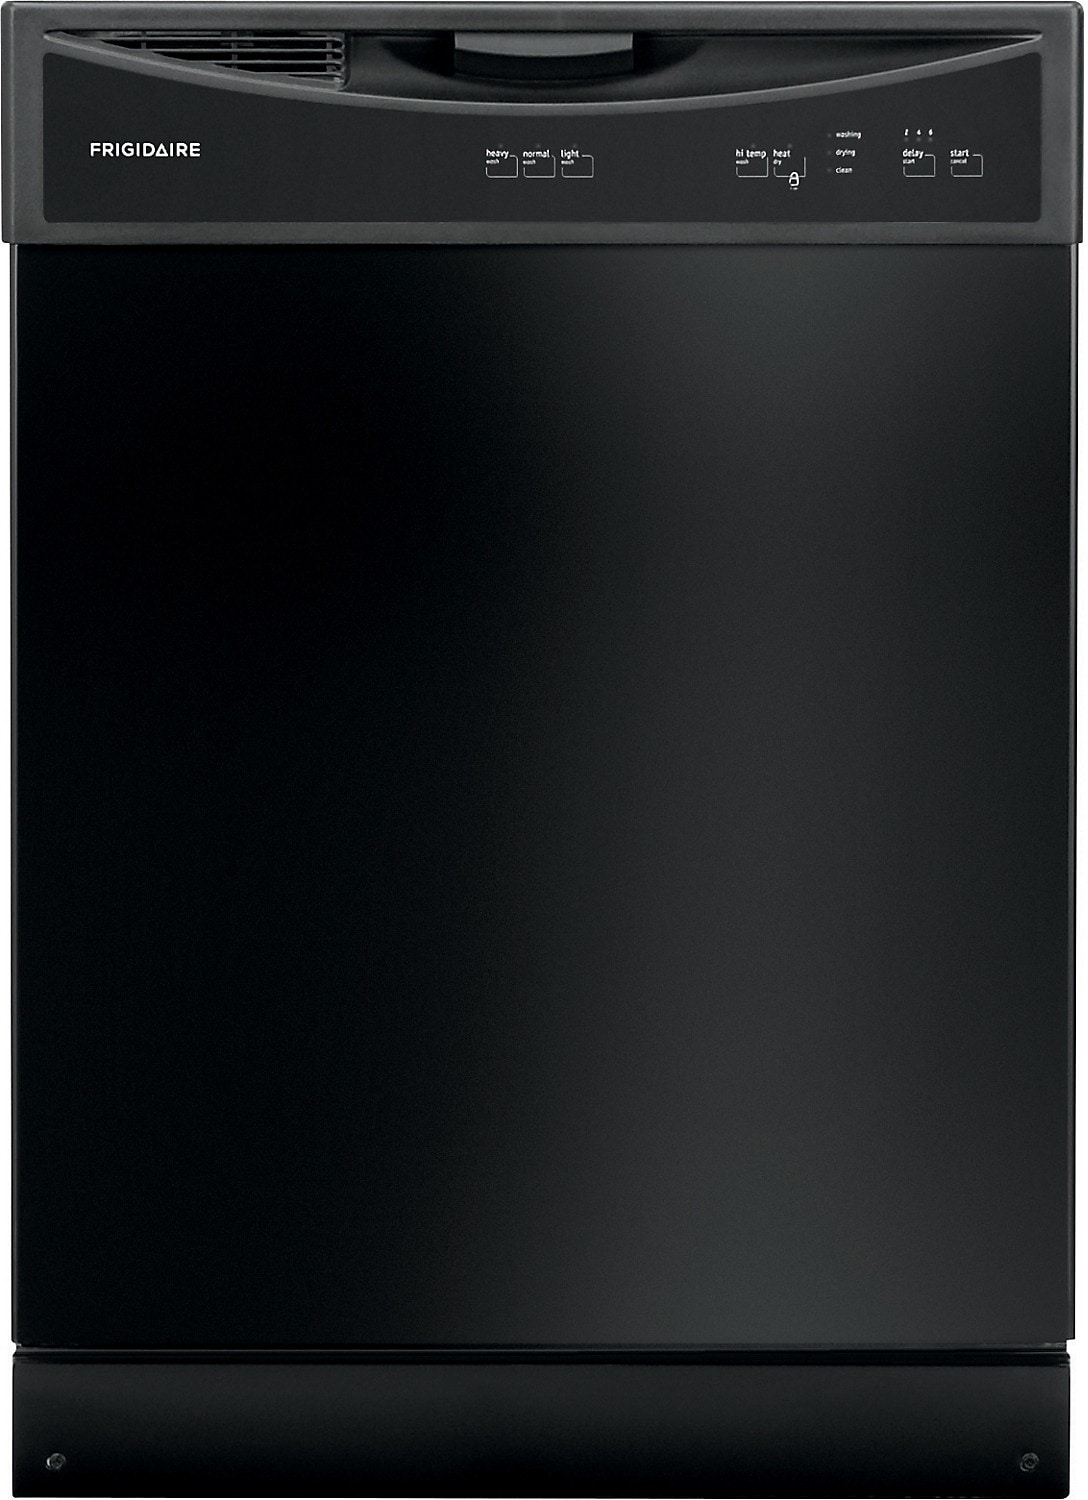 "Frigidaire 24"" Built-In Large-Capacity Dishwasher – Black"